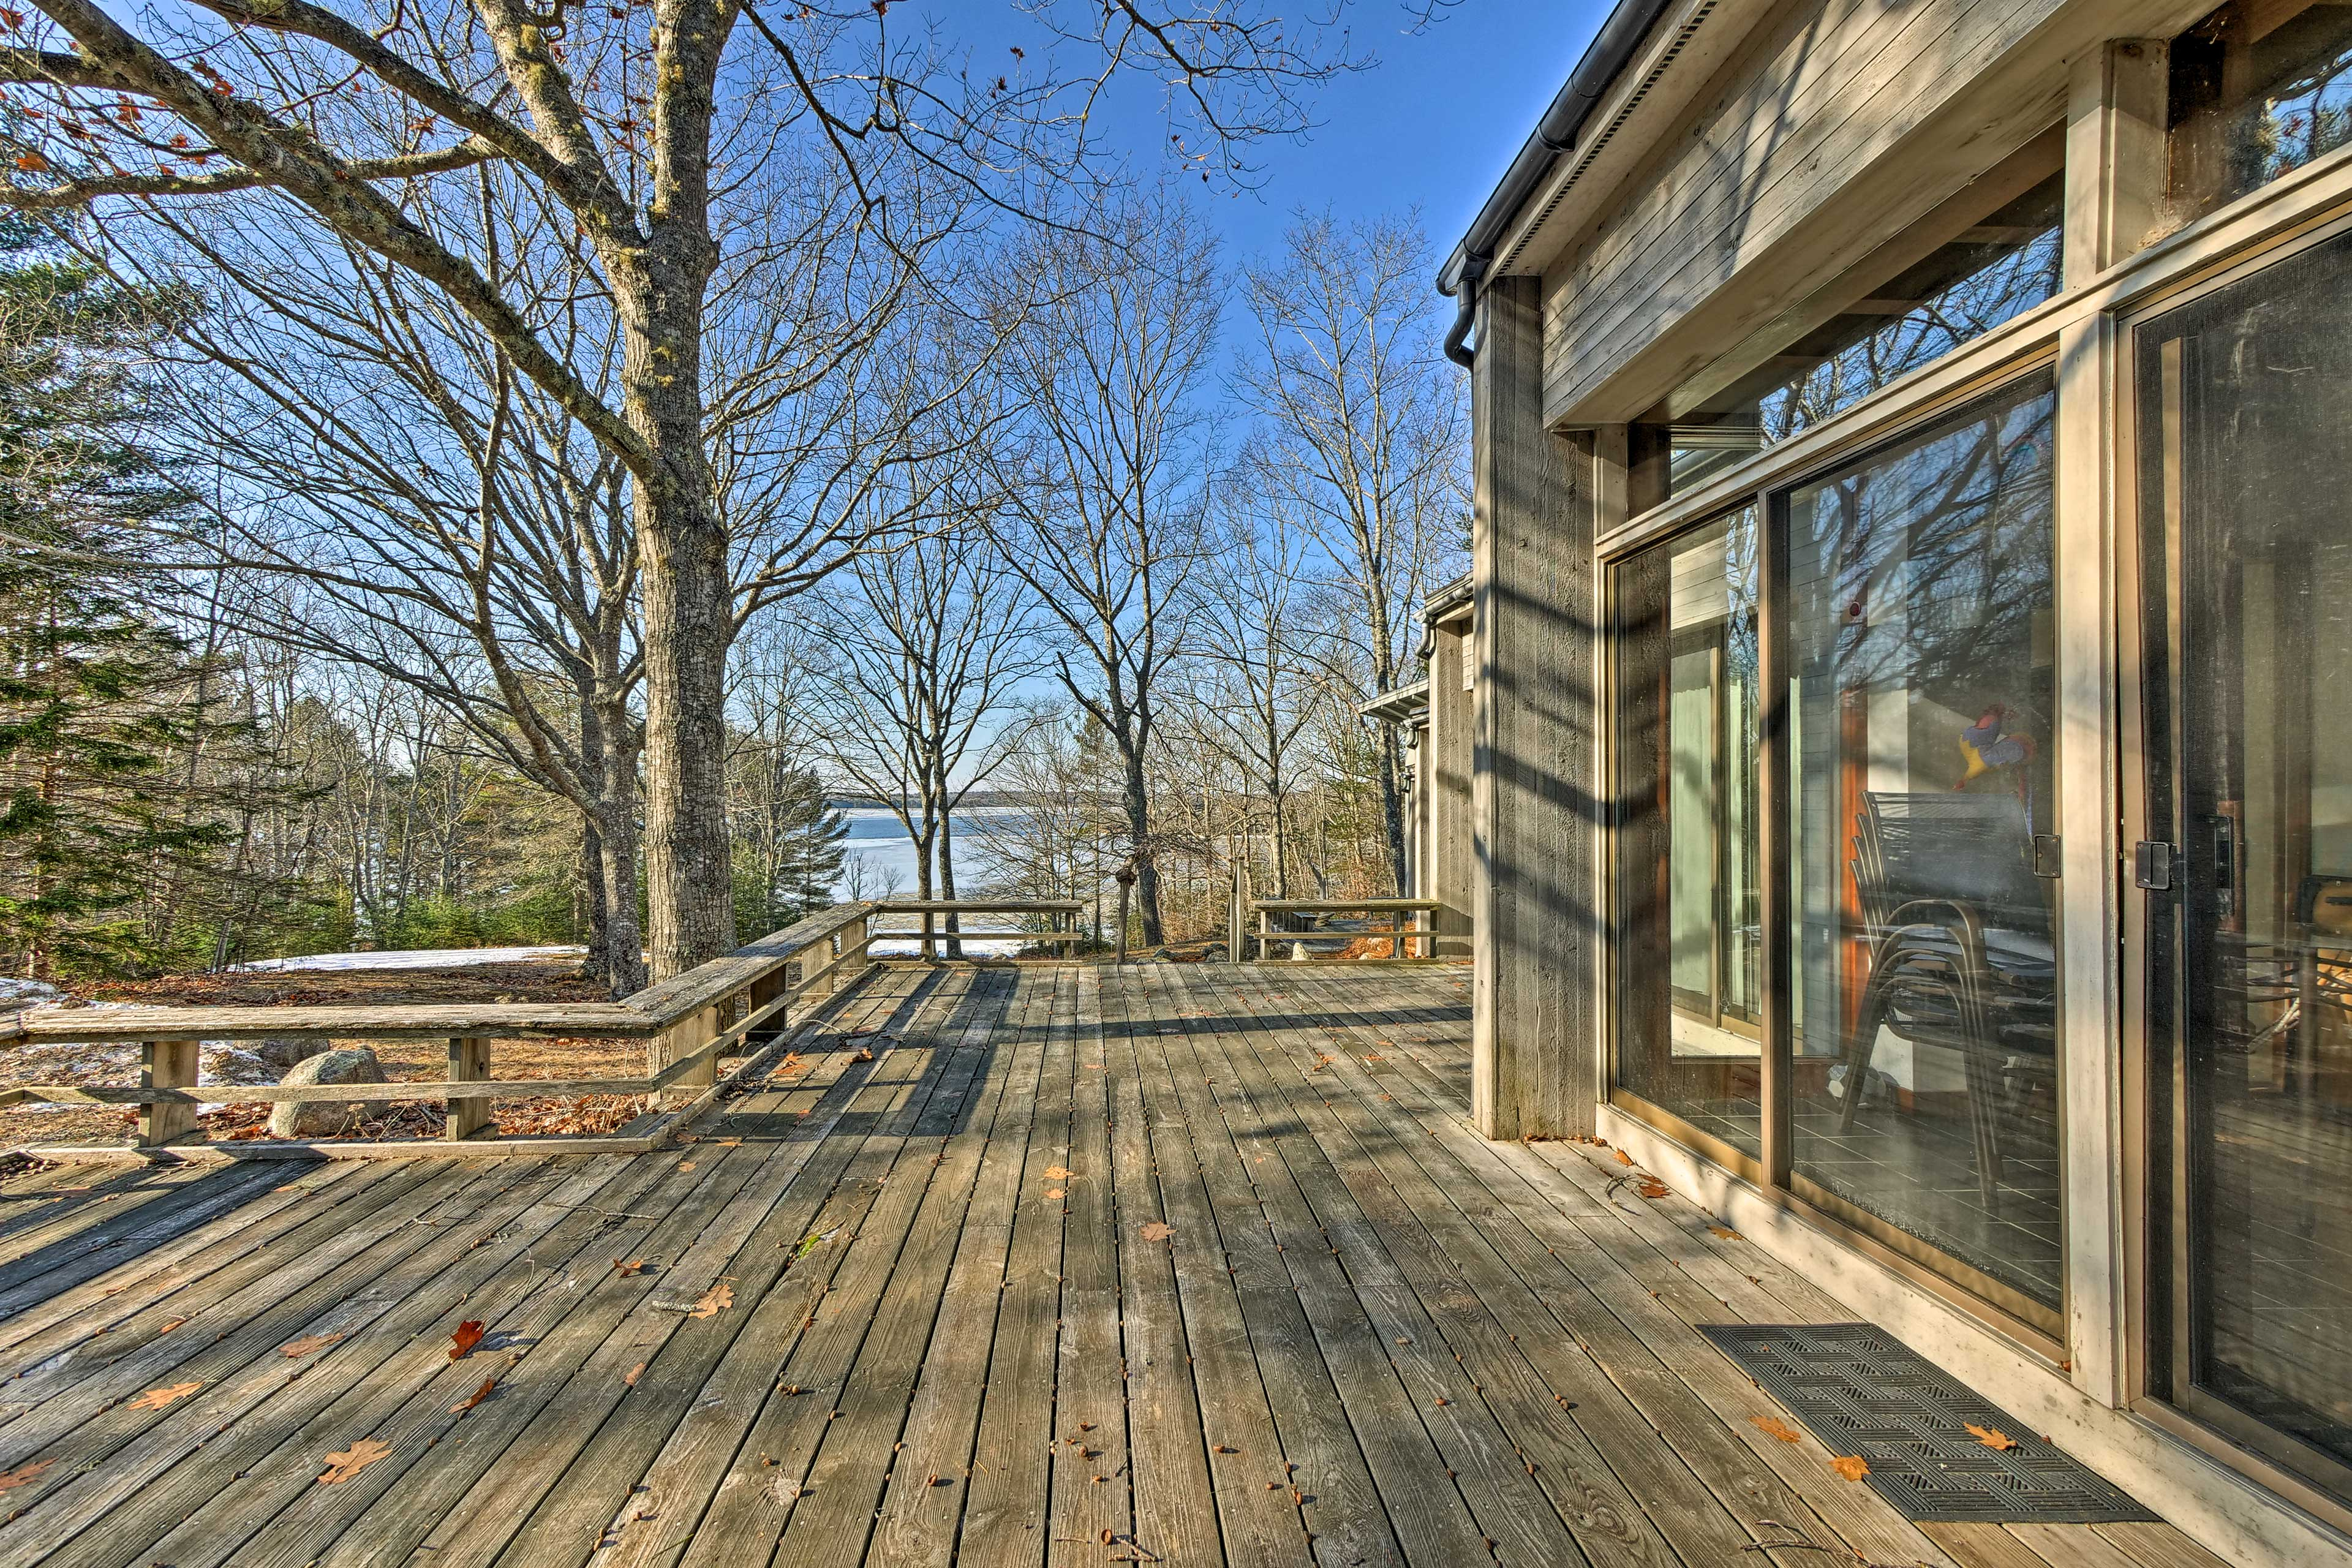 Step outside to get some fresh air on the expansive deck!